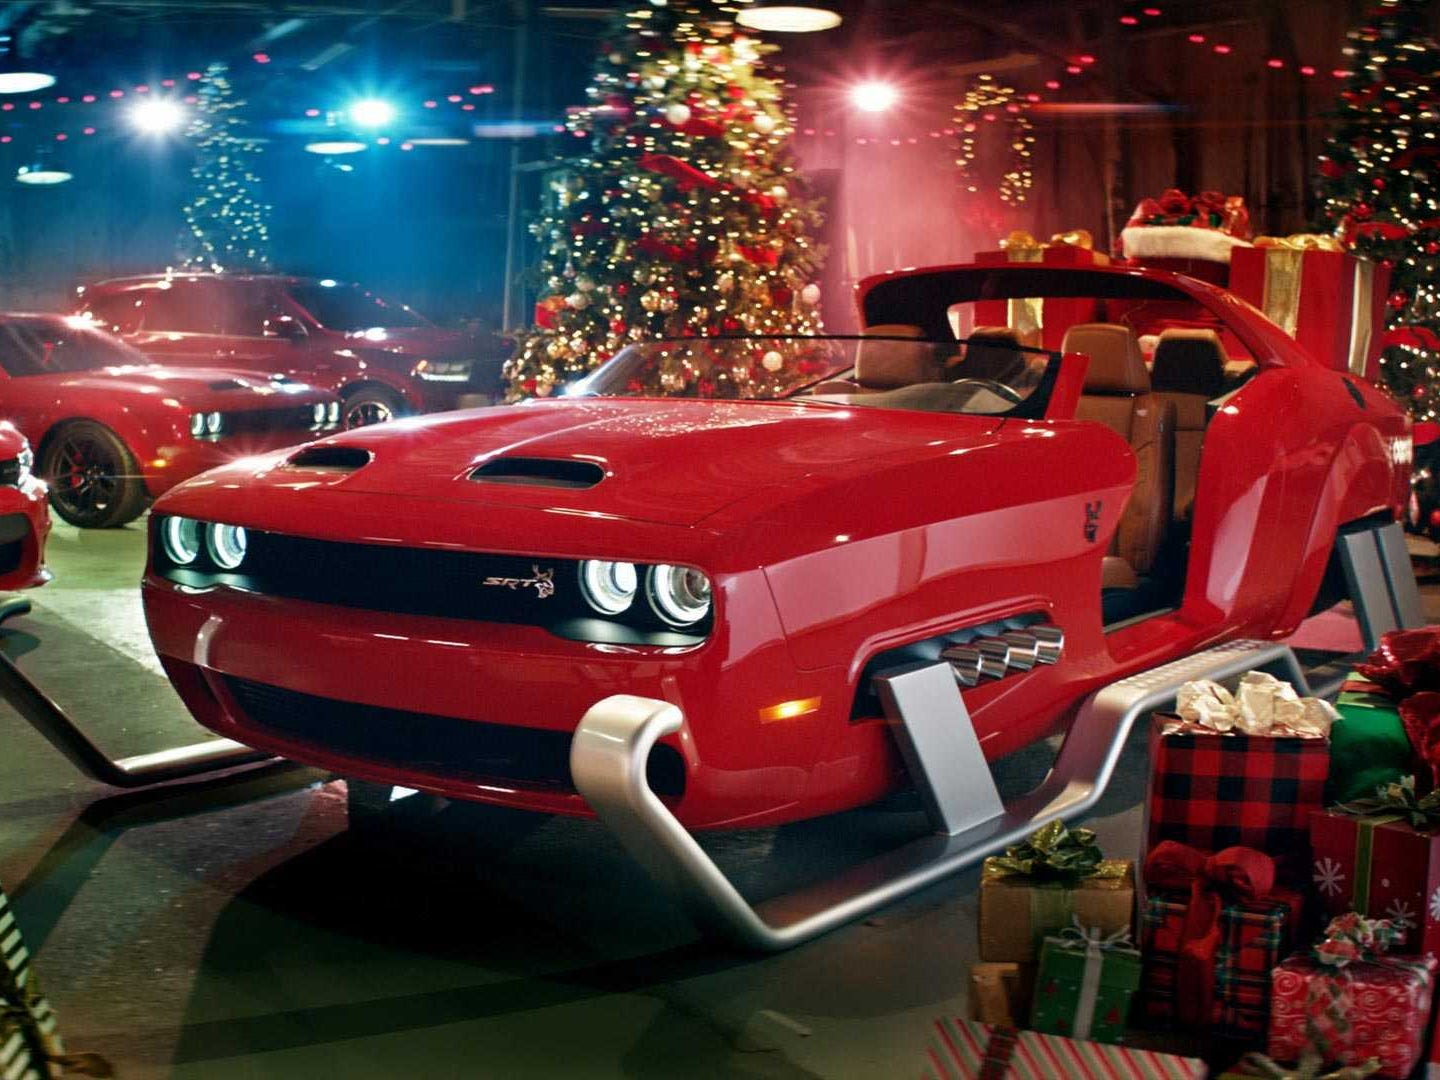 The Dodge Challenger HellcatRedeye sleigh was introduced as part of a Black Friday TV ad campaign. Now it's at the LA Auto Show in all its 797-horsepower glory.